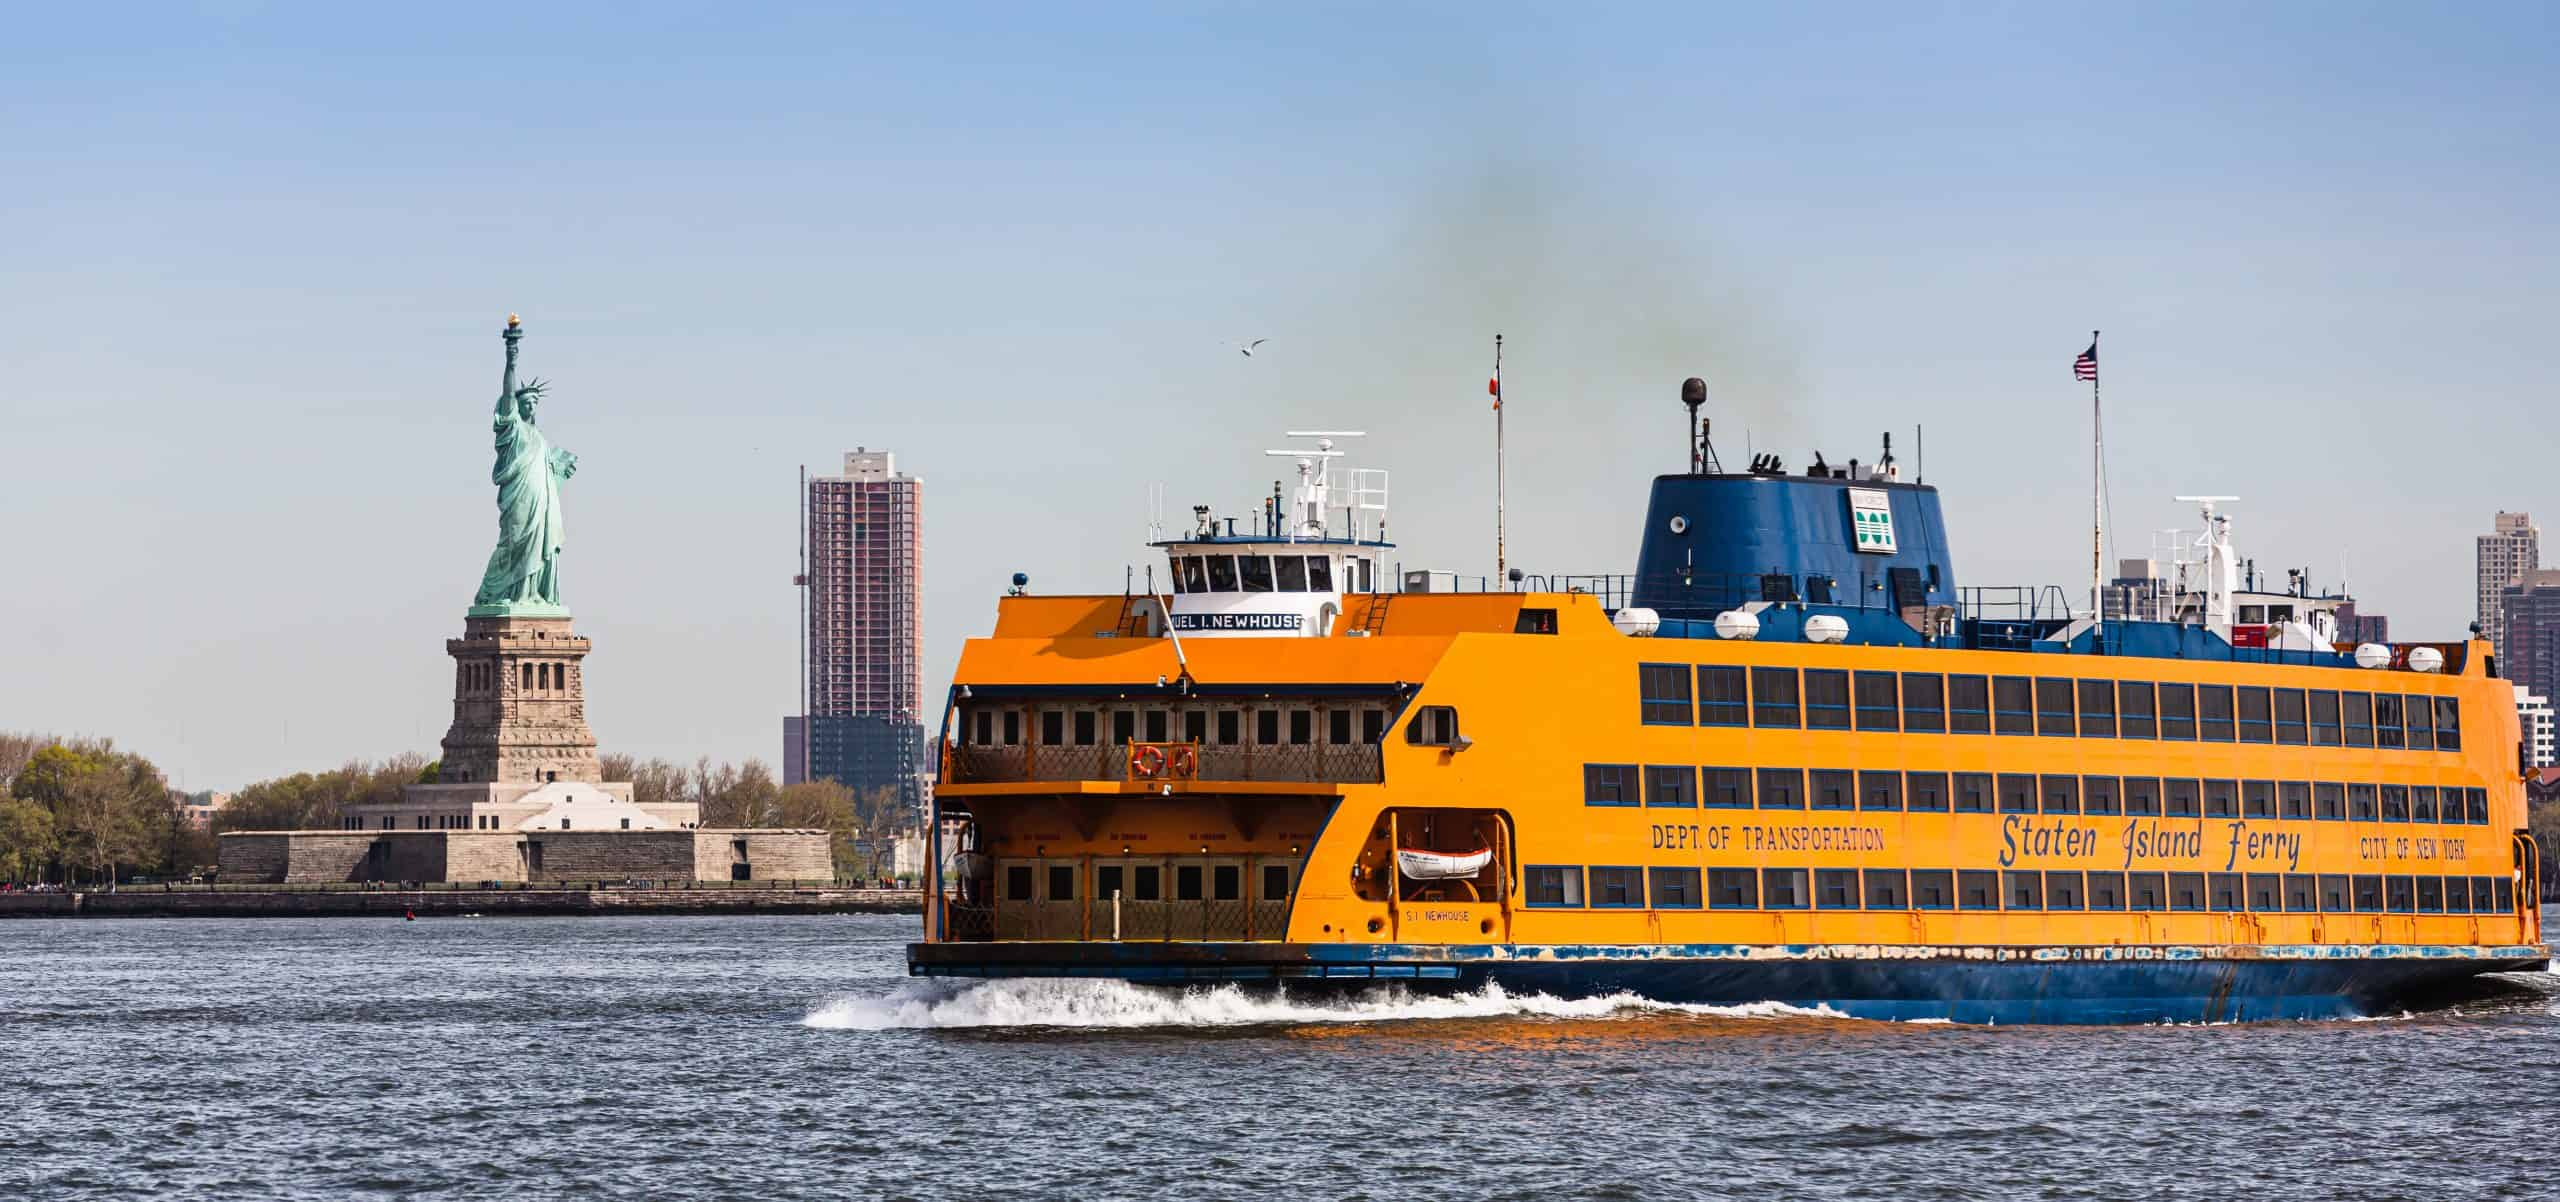 The Staten Island Ferry and the Statue of Liberty. what to do in new york city? Visitng the statue of Liberty is top things to do new york